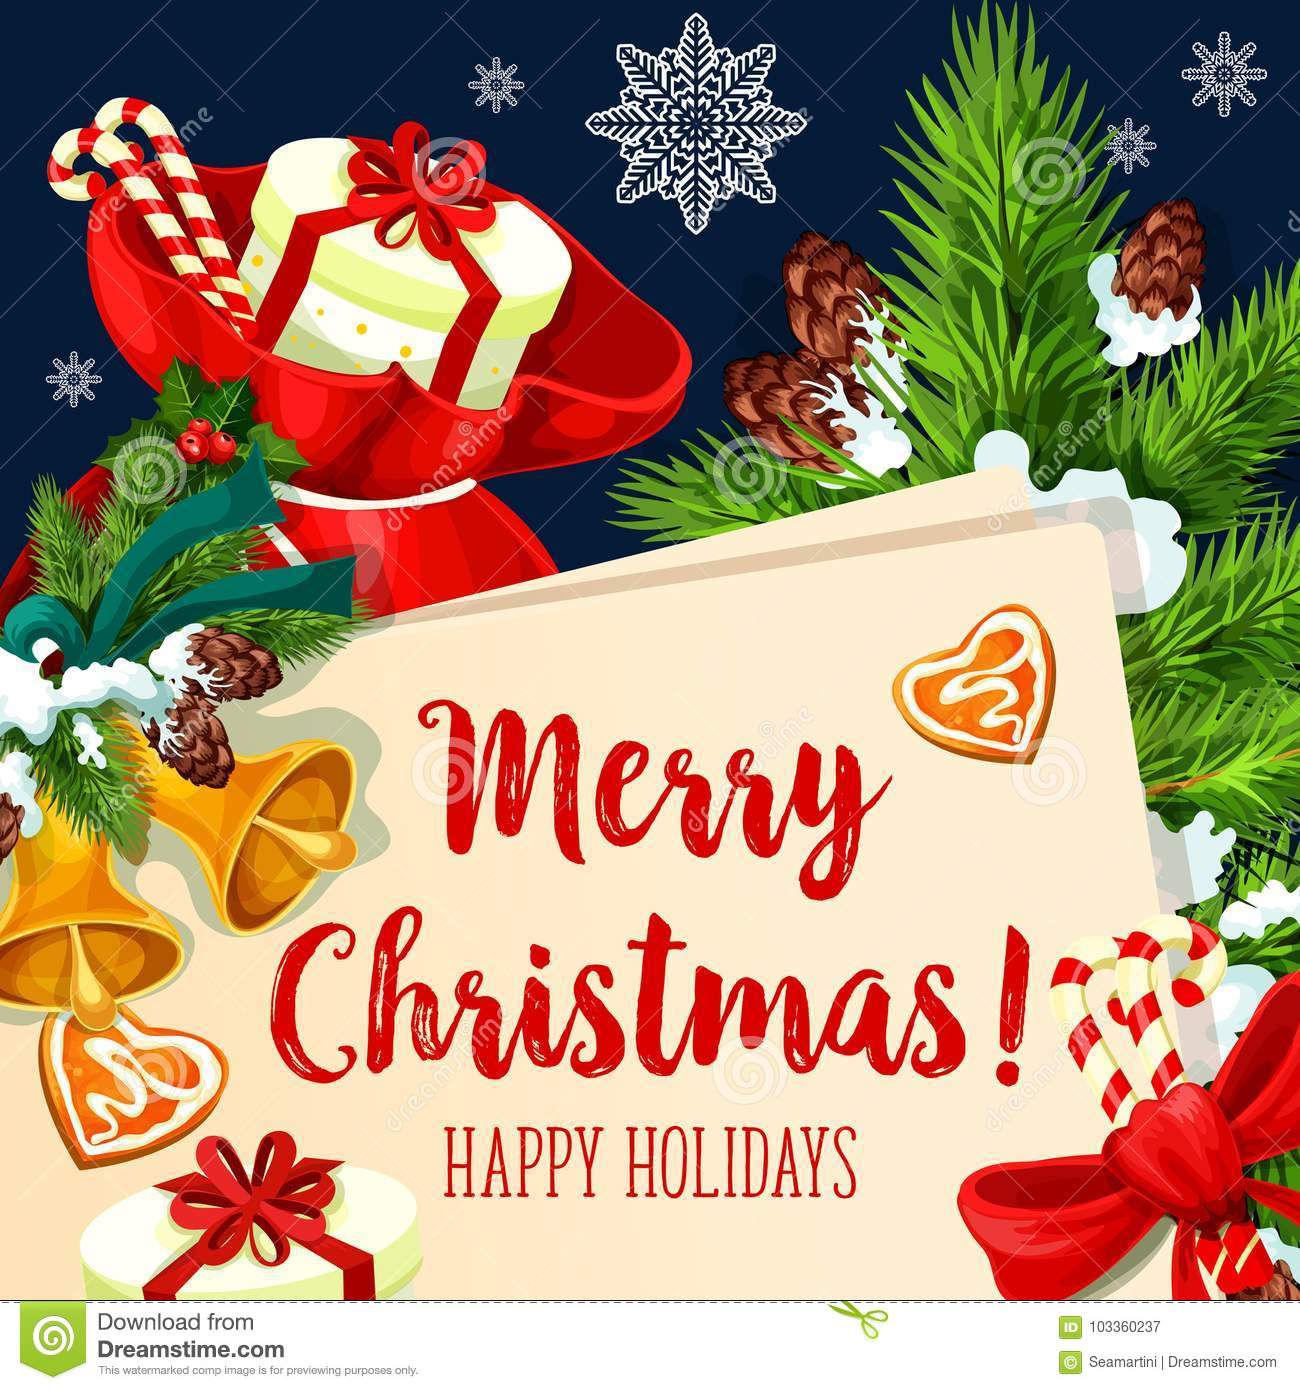 Merry Christmas Wishes Greeting Cards.Merry Christmas Holiday Vector Greeting Card Stock Vector